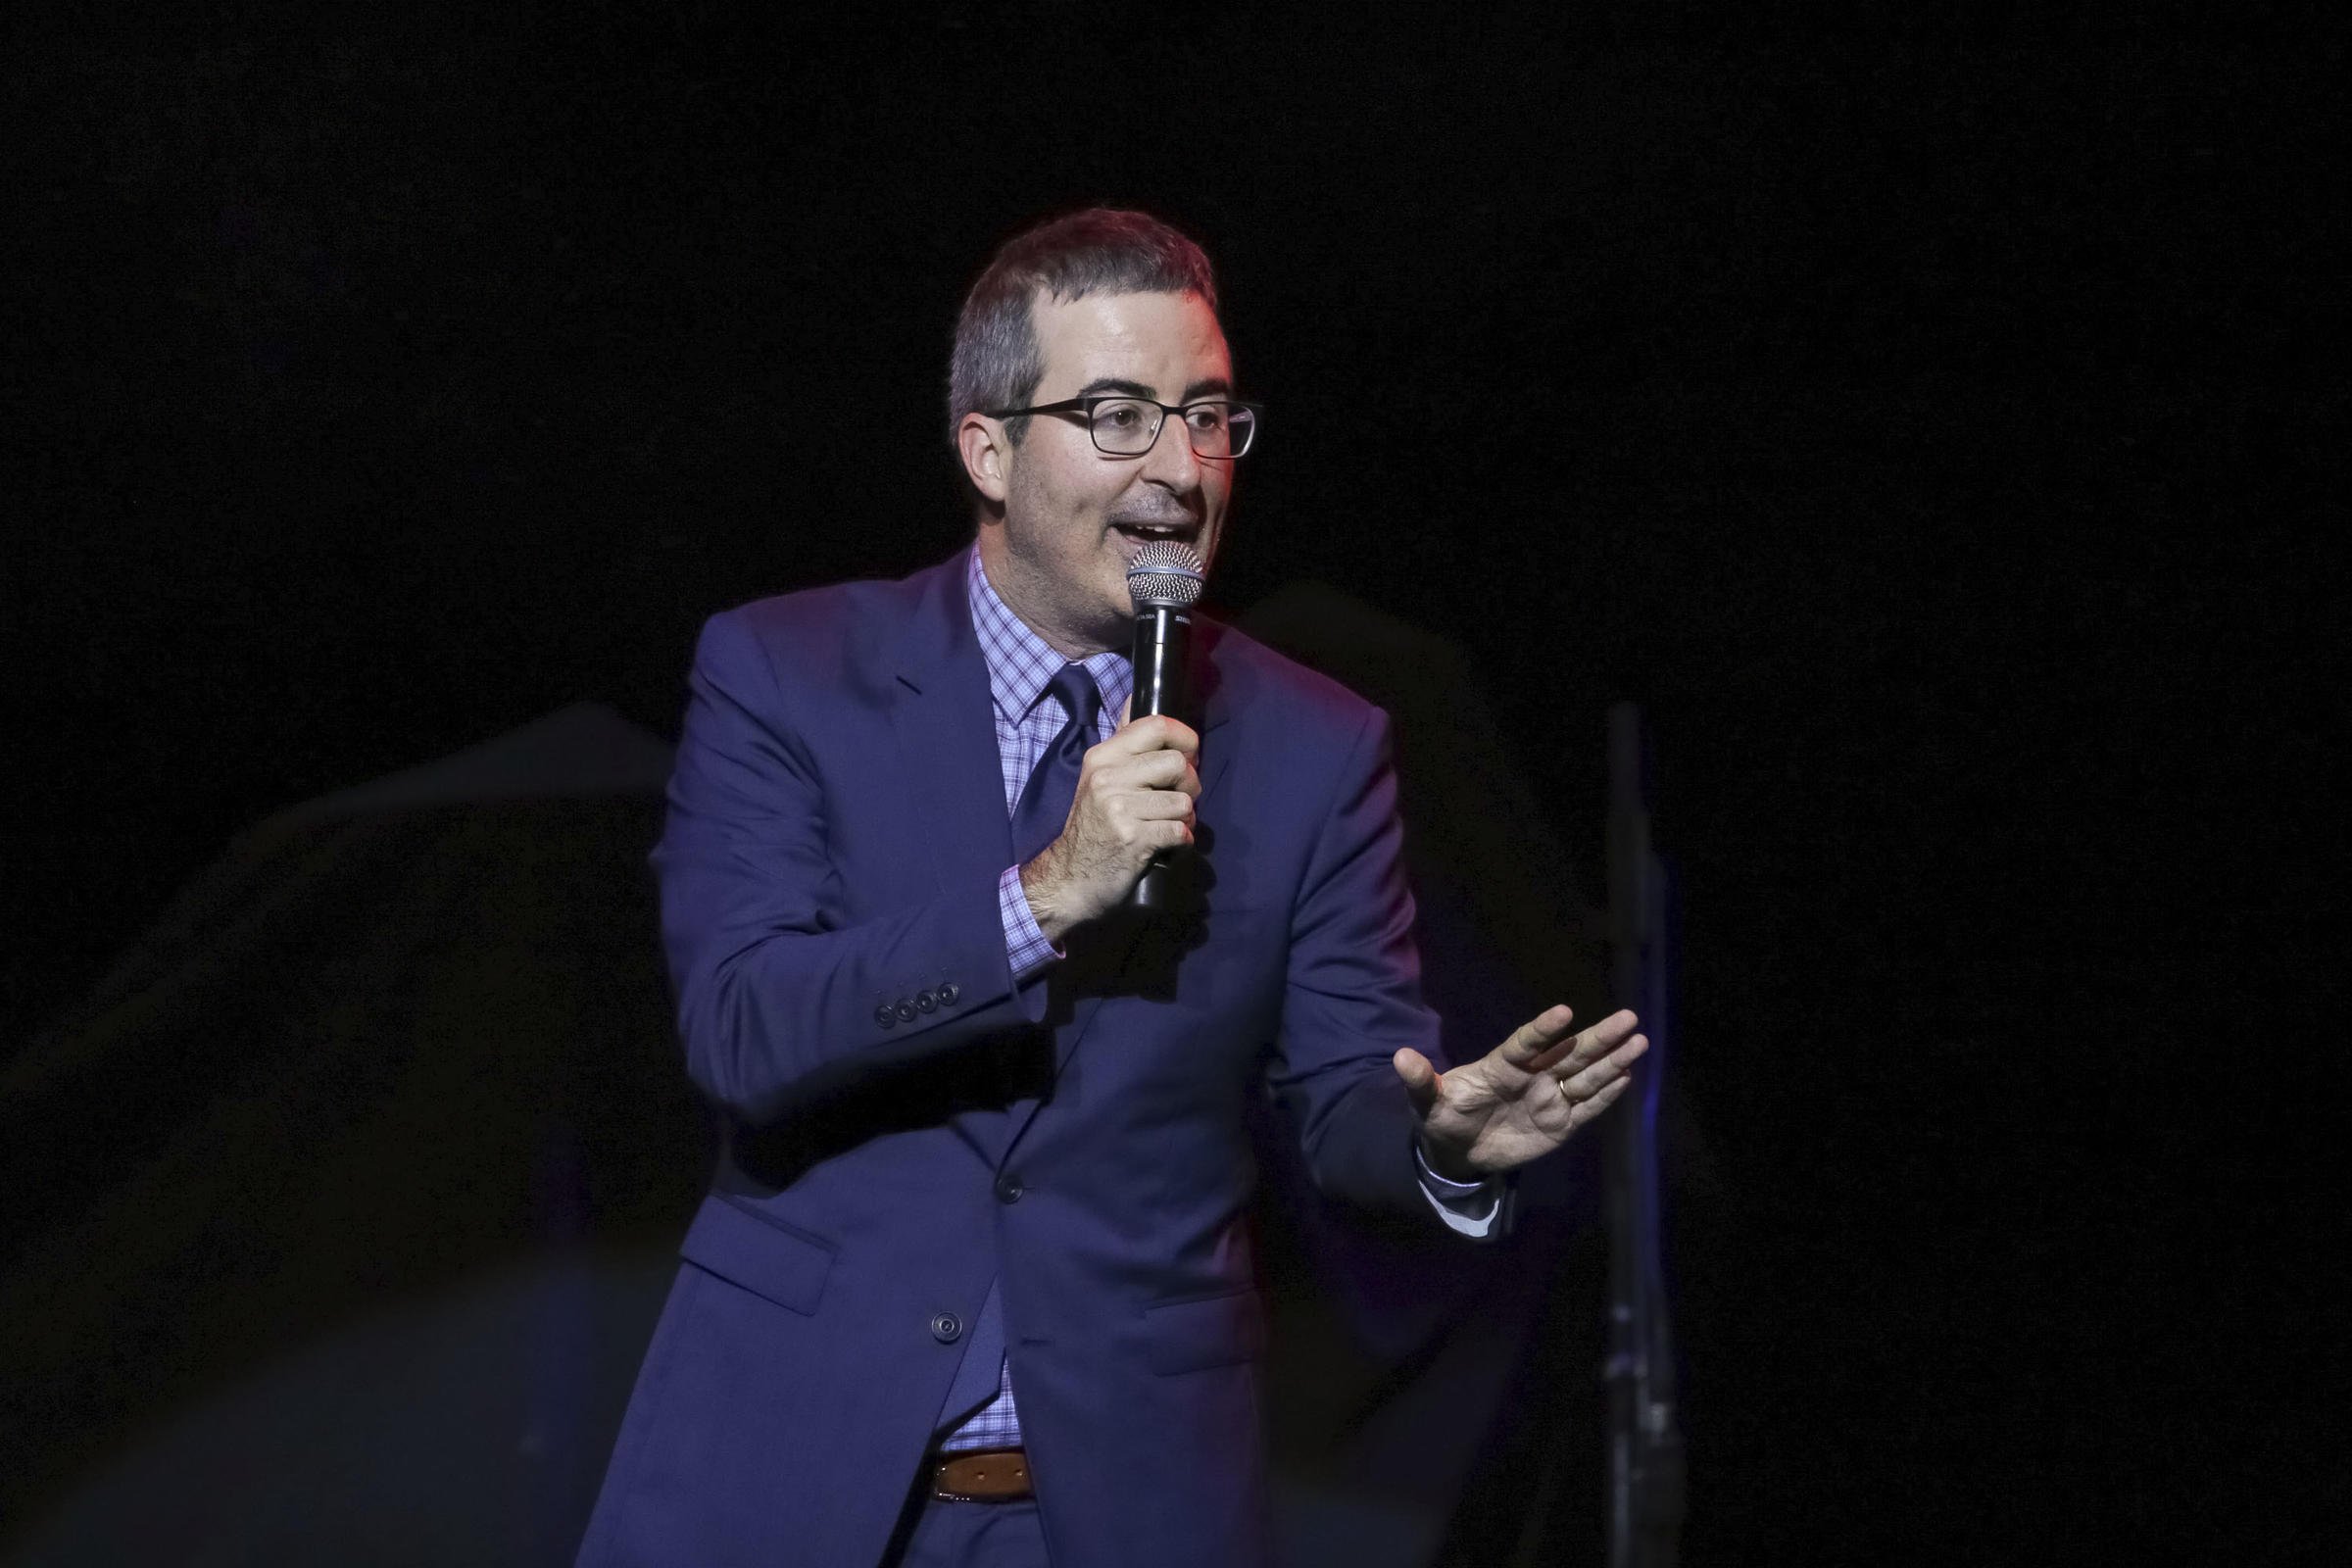 A judge tossed out a coal CEO's defamation lawsuit against John Oliver